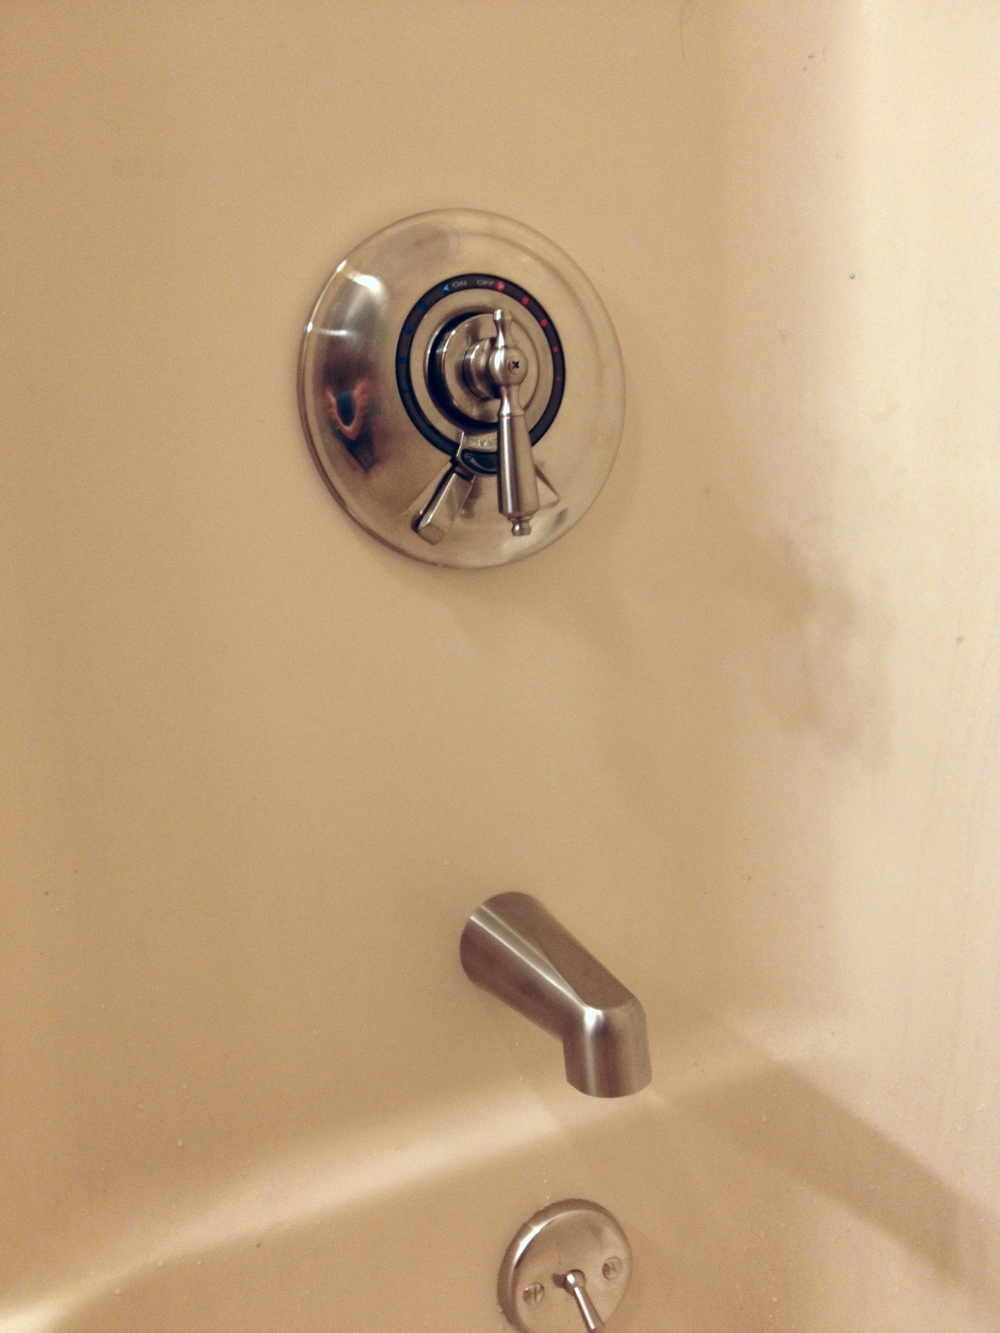 The new shower/tub hardware in all its hard-earned glory.